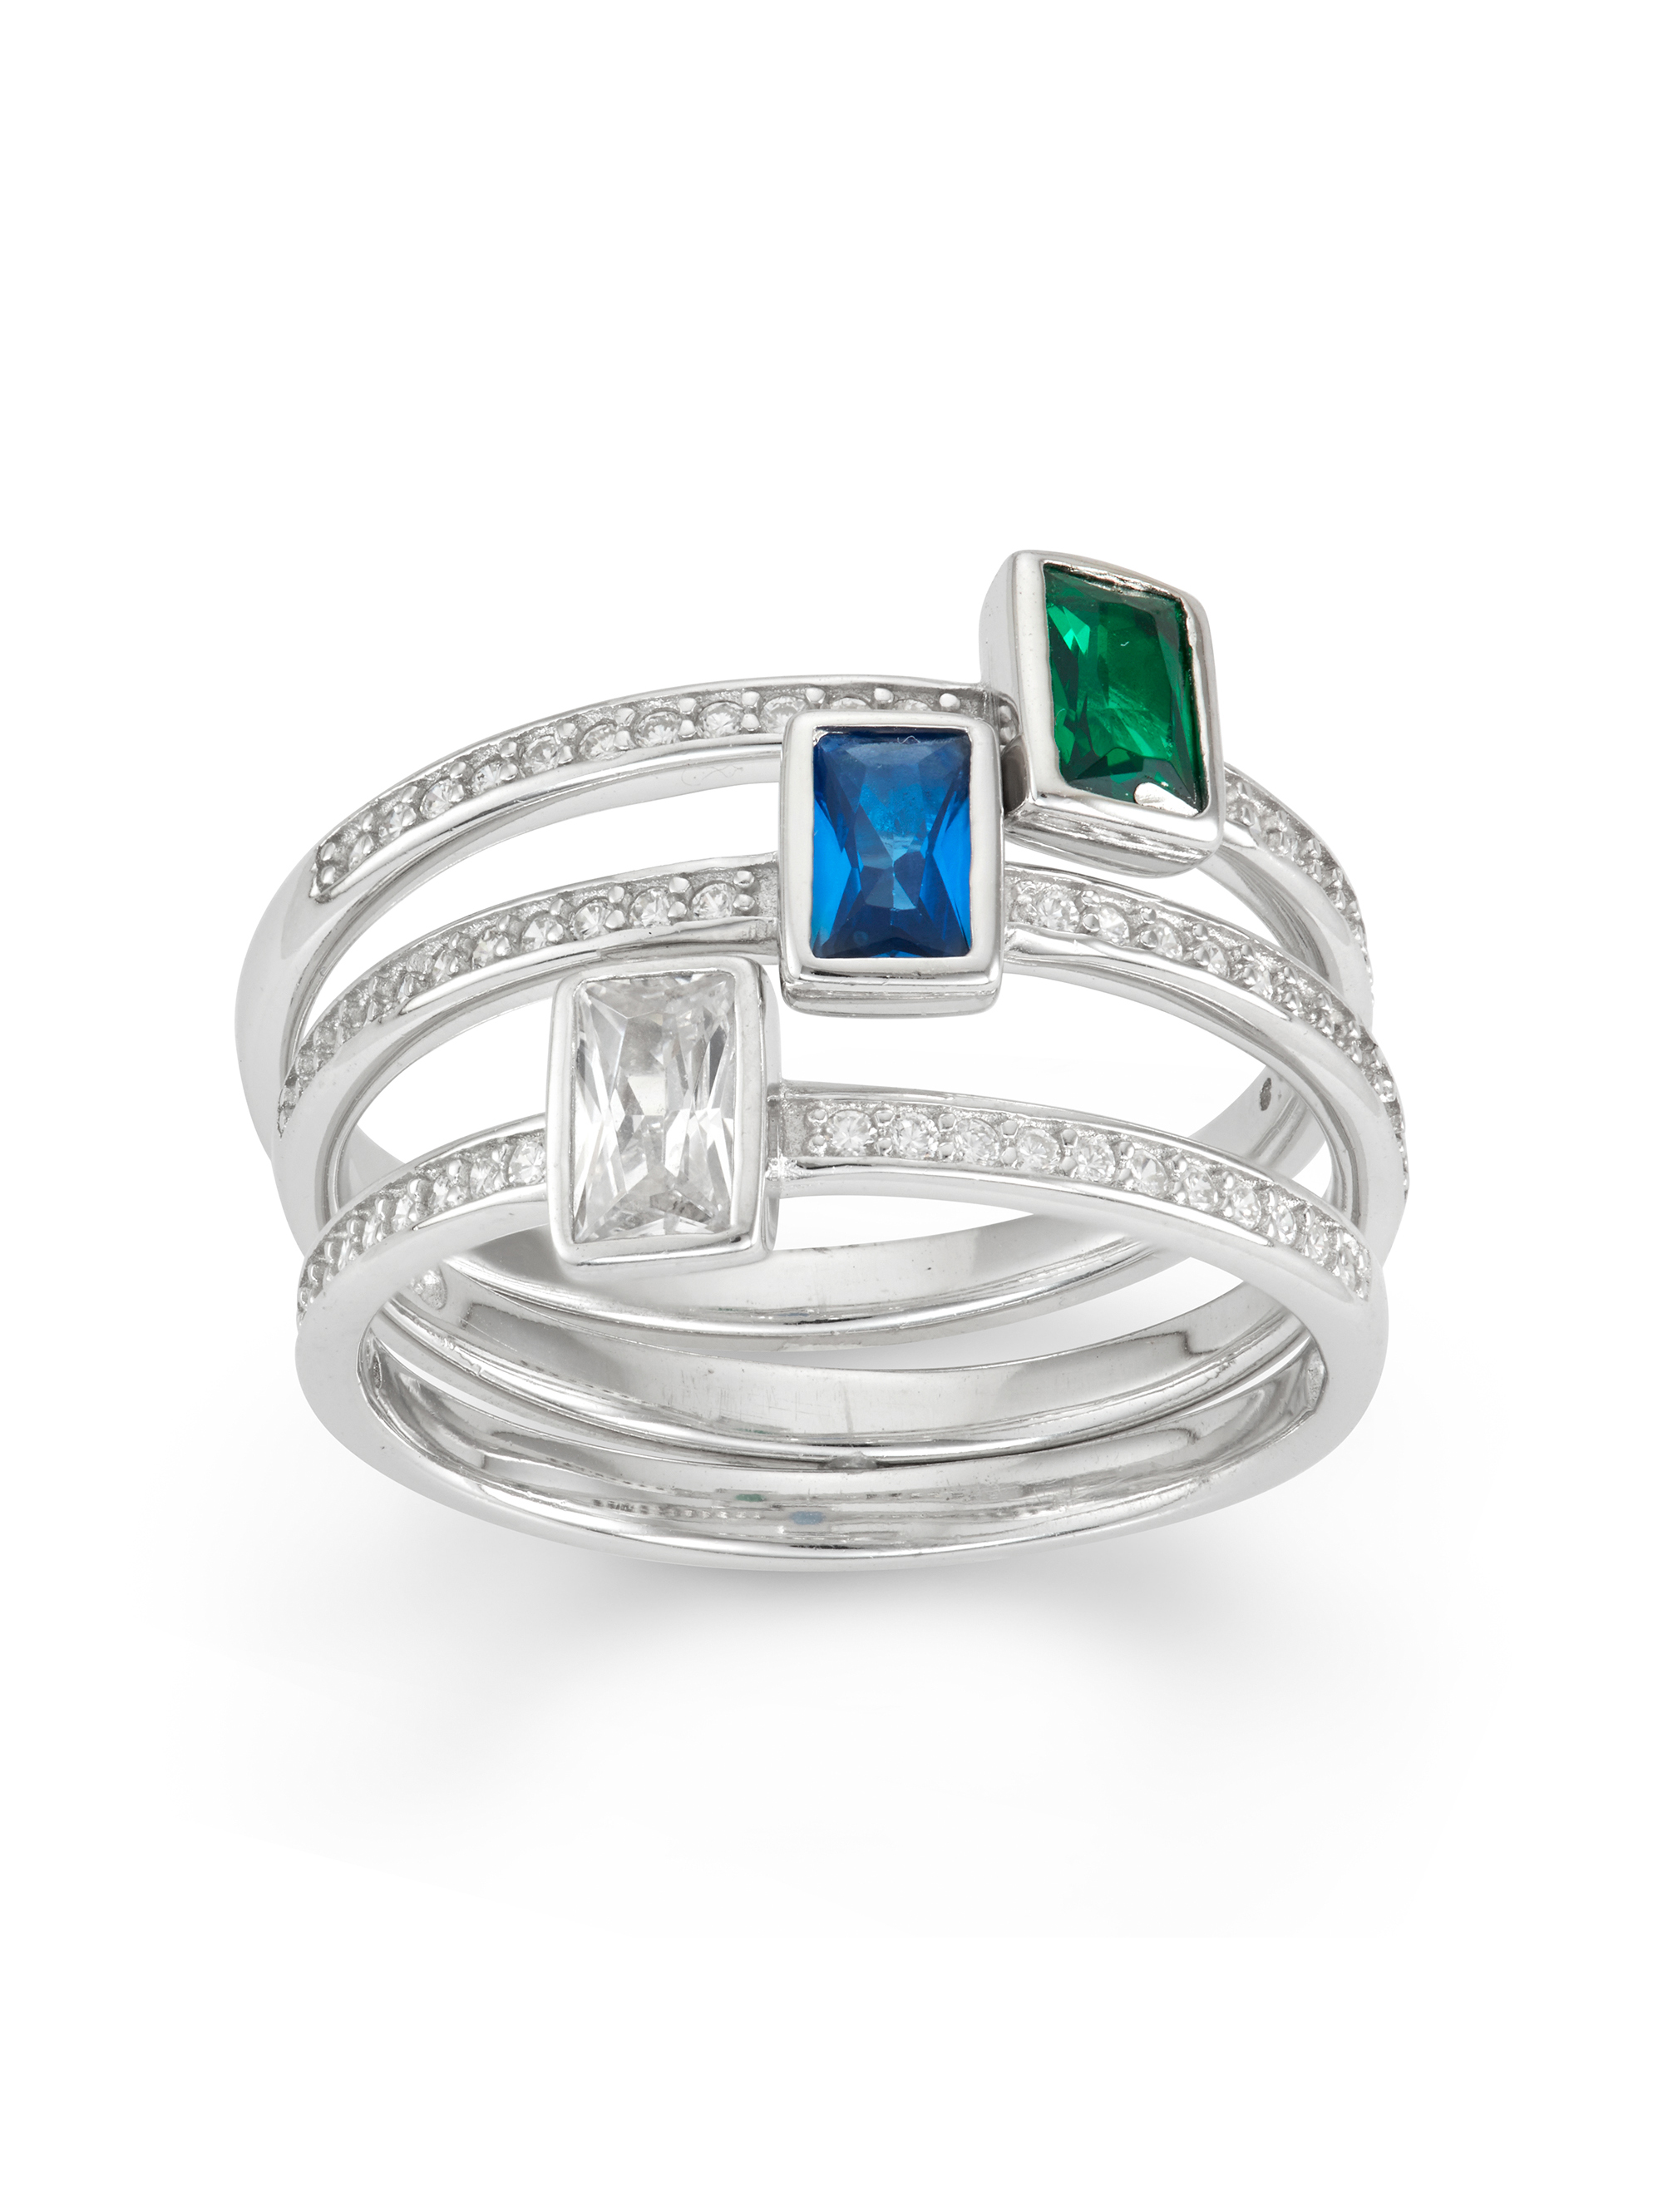 Simulated Emerald, Created Blue Sapphire and White Cubic Zirconia Emerald-Cut 3-Piece Sterling Silver Ring Set